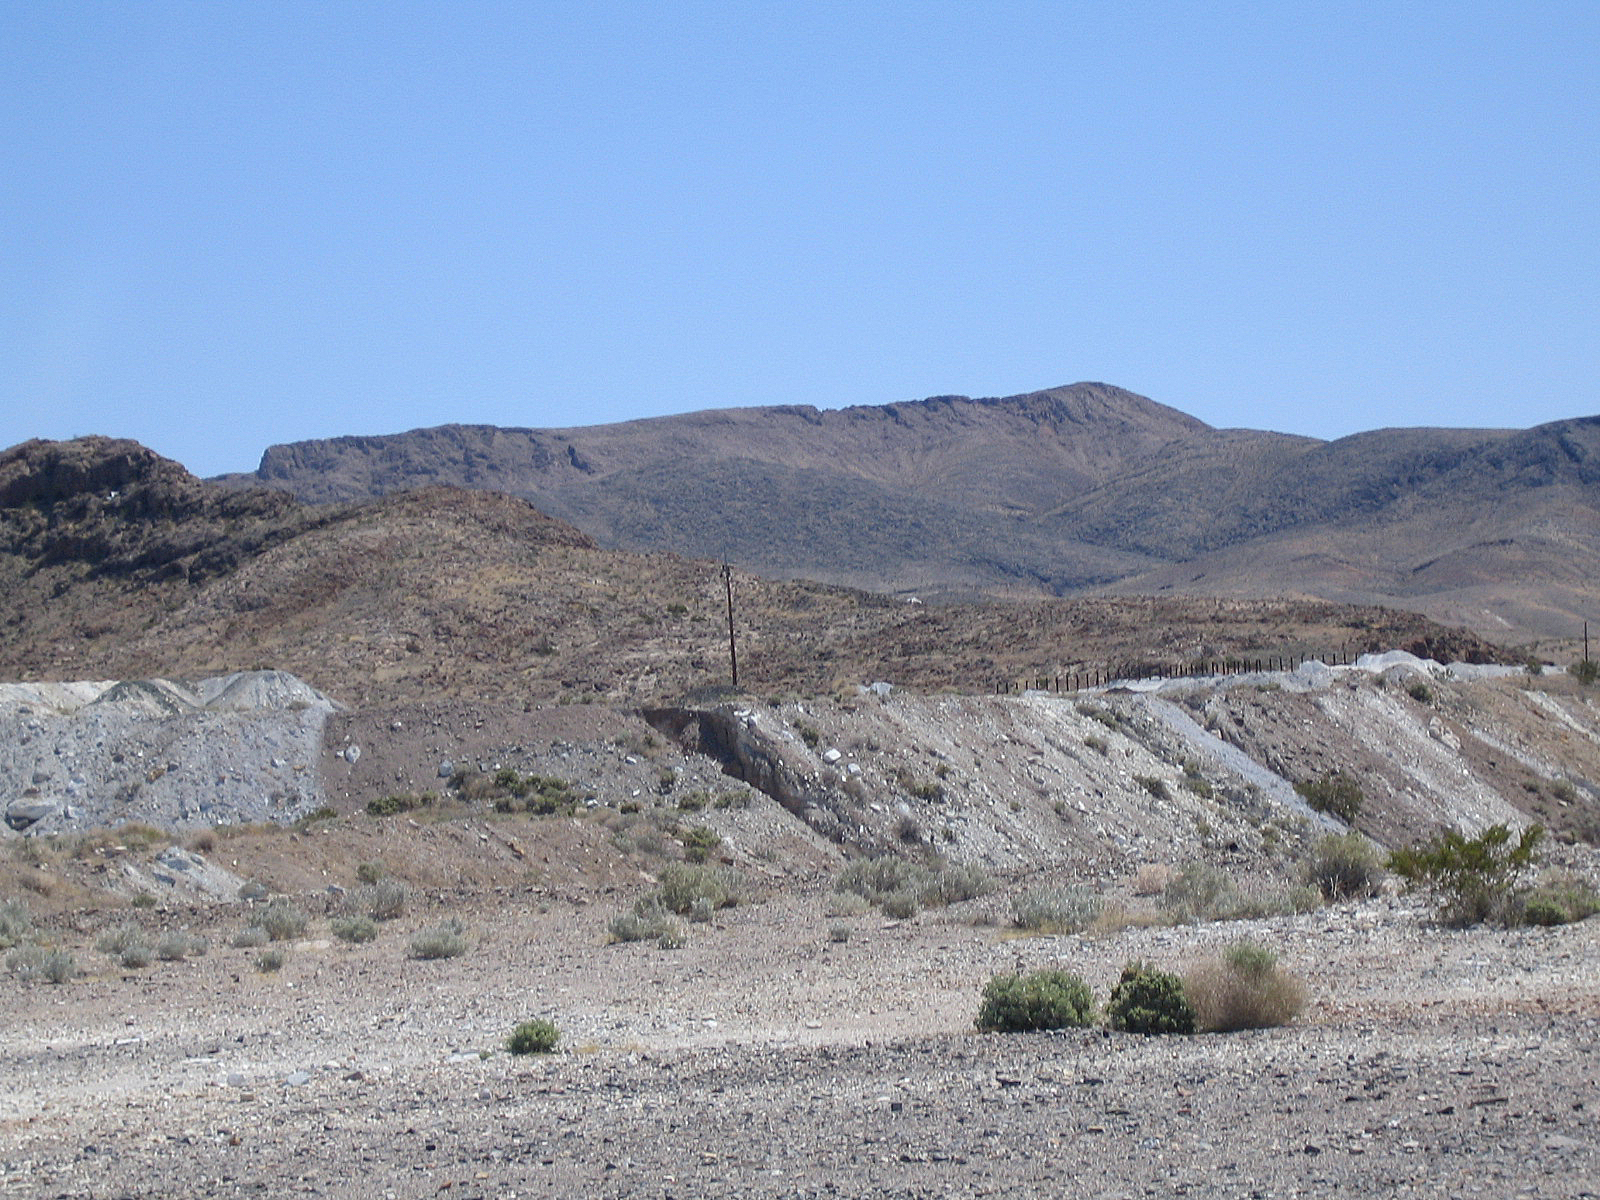 Overburden at a talc mine. Photo by Bill Albright.